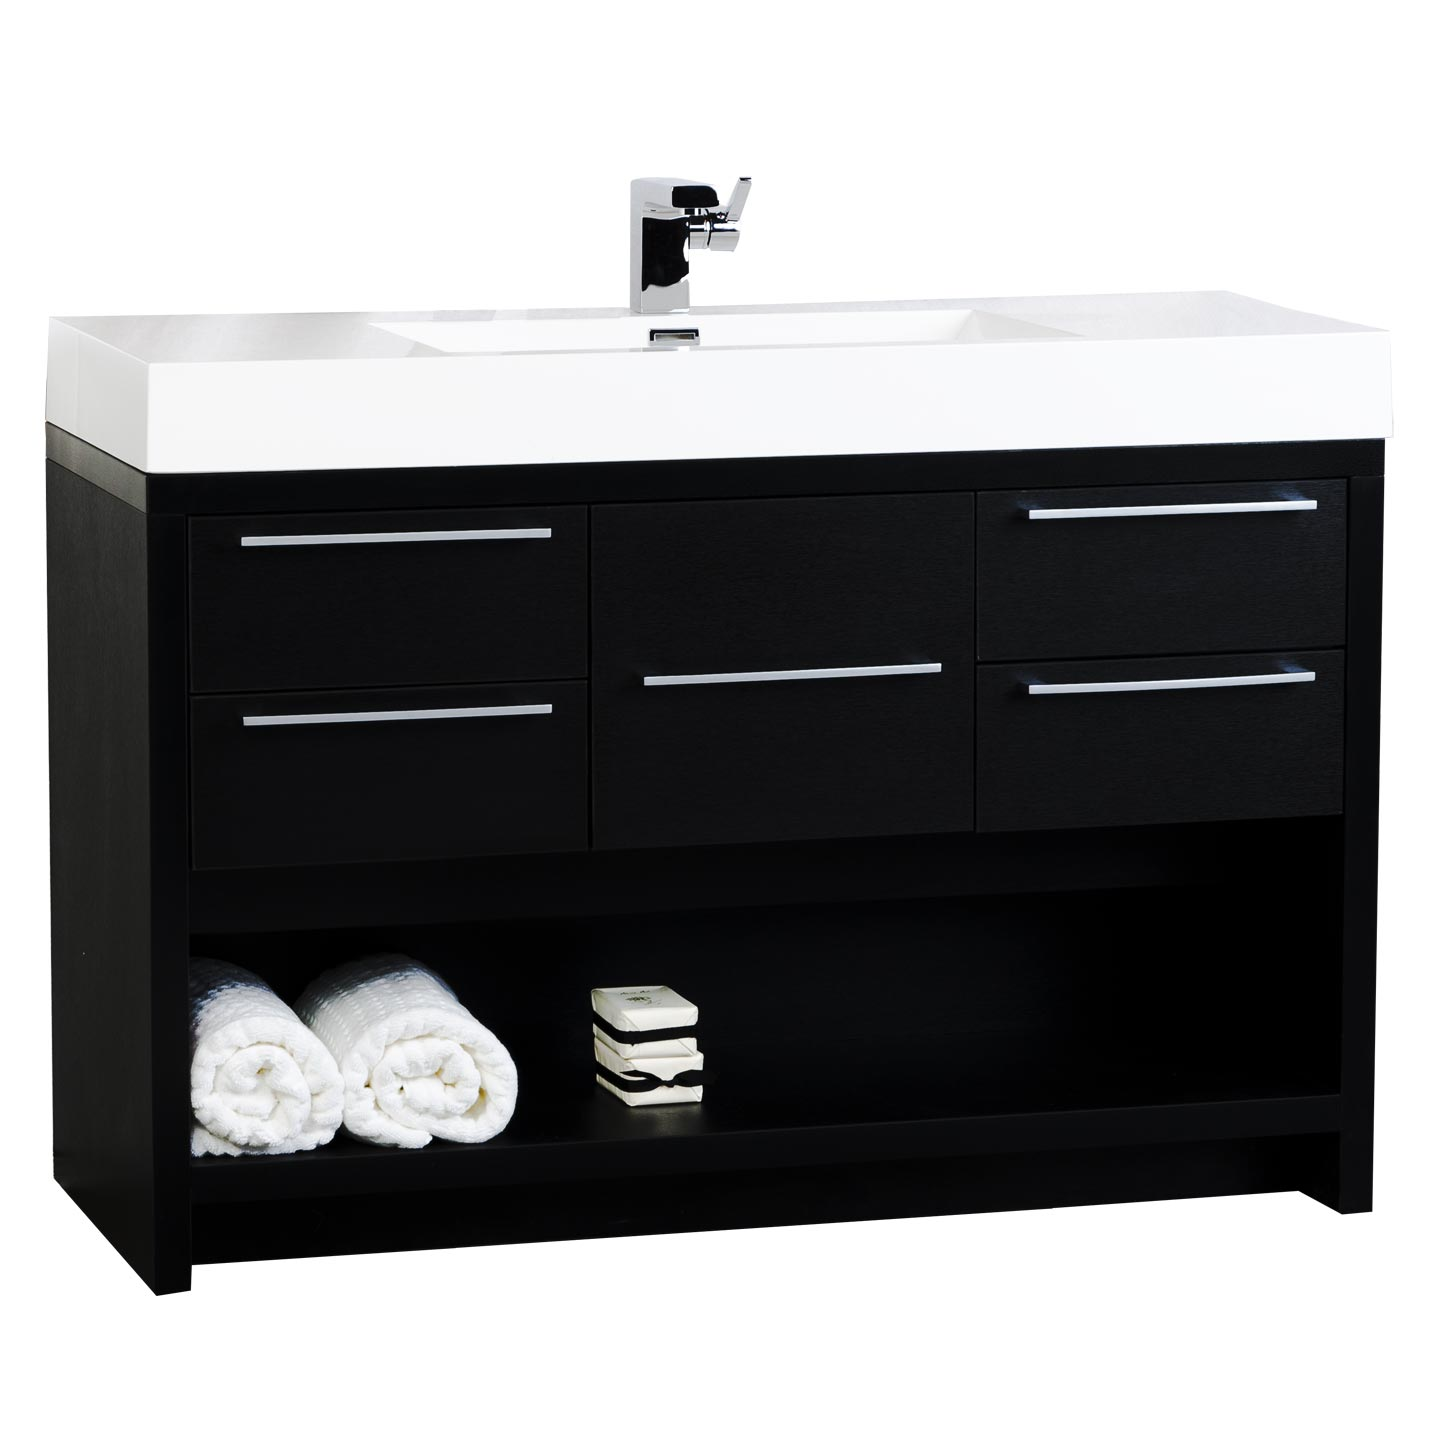 47quot; Modern Bathroom Vanity Set Black Finish TNL1200BK  Conceptbaths